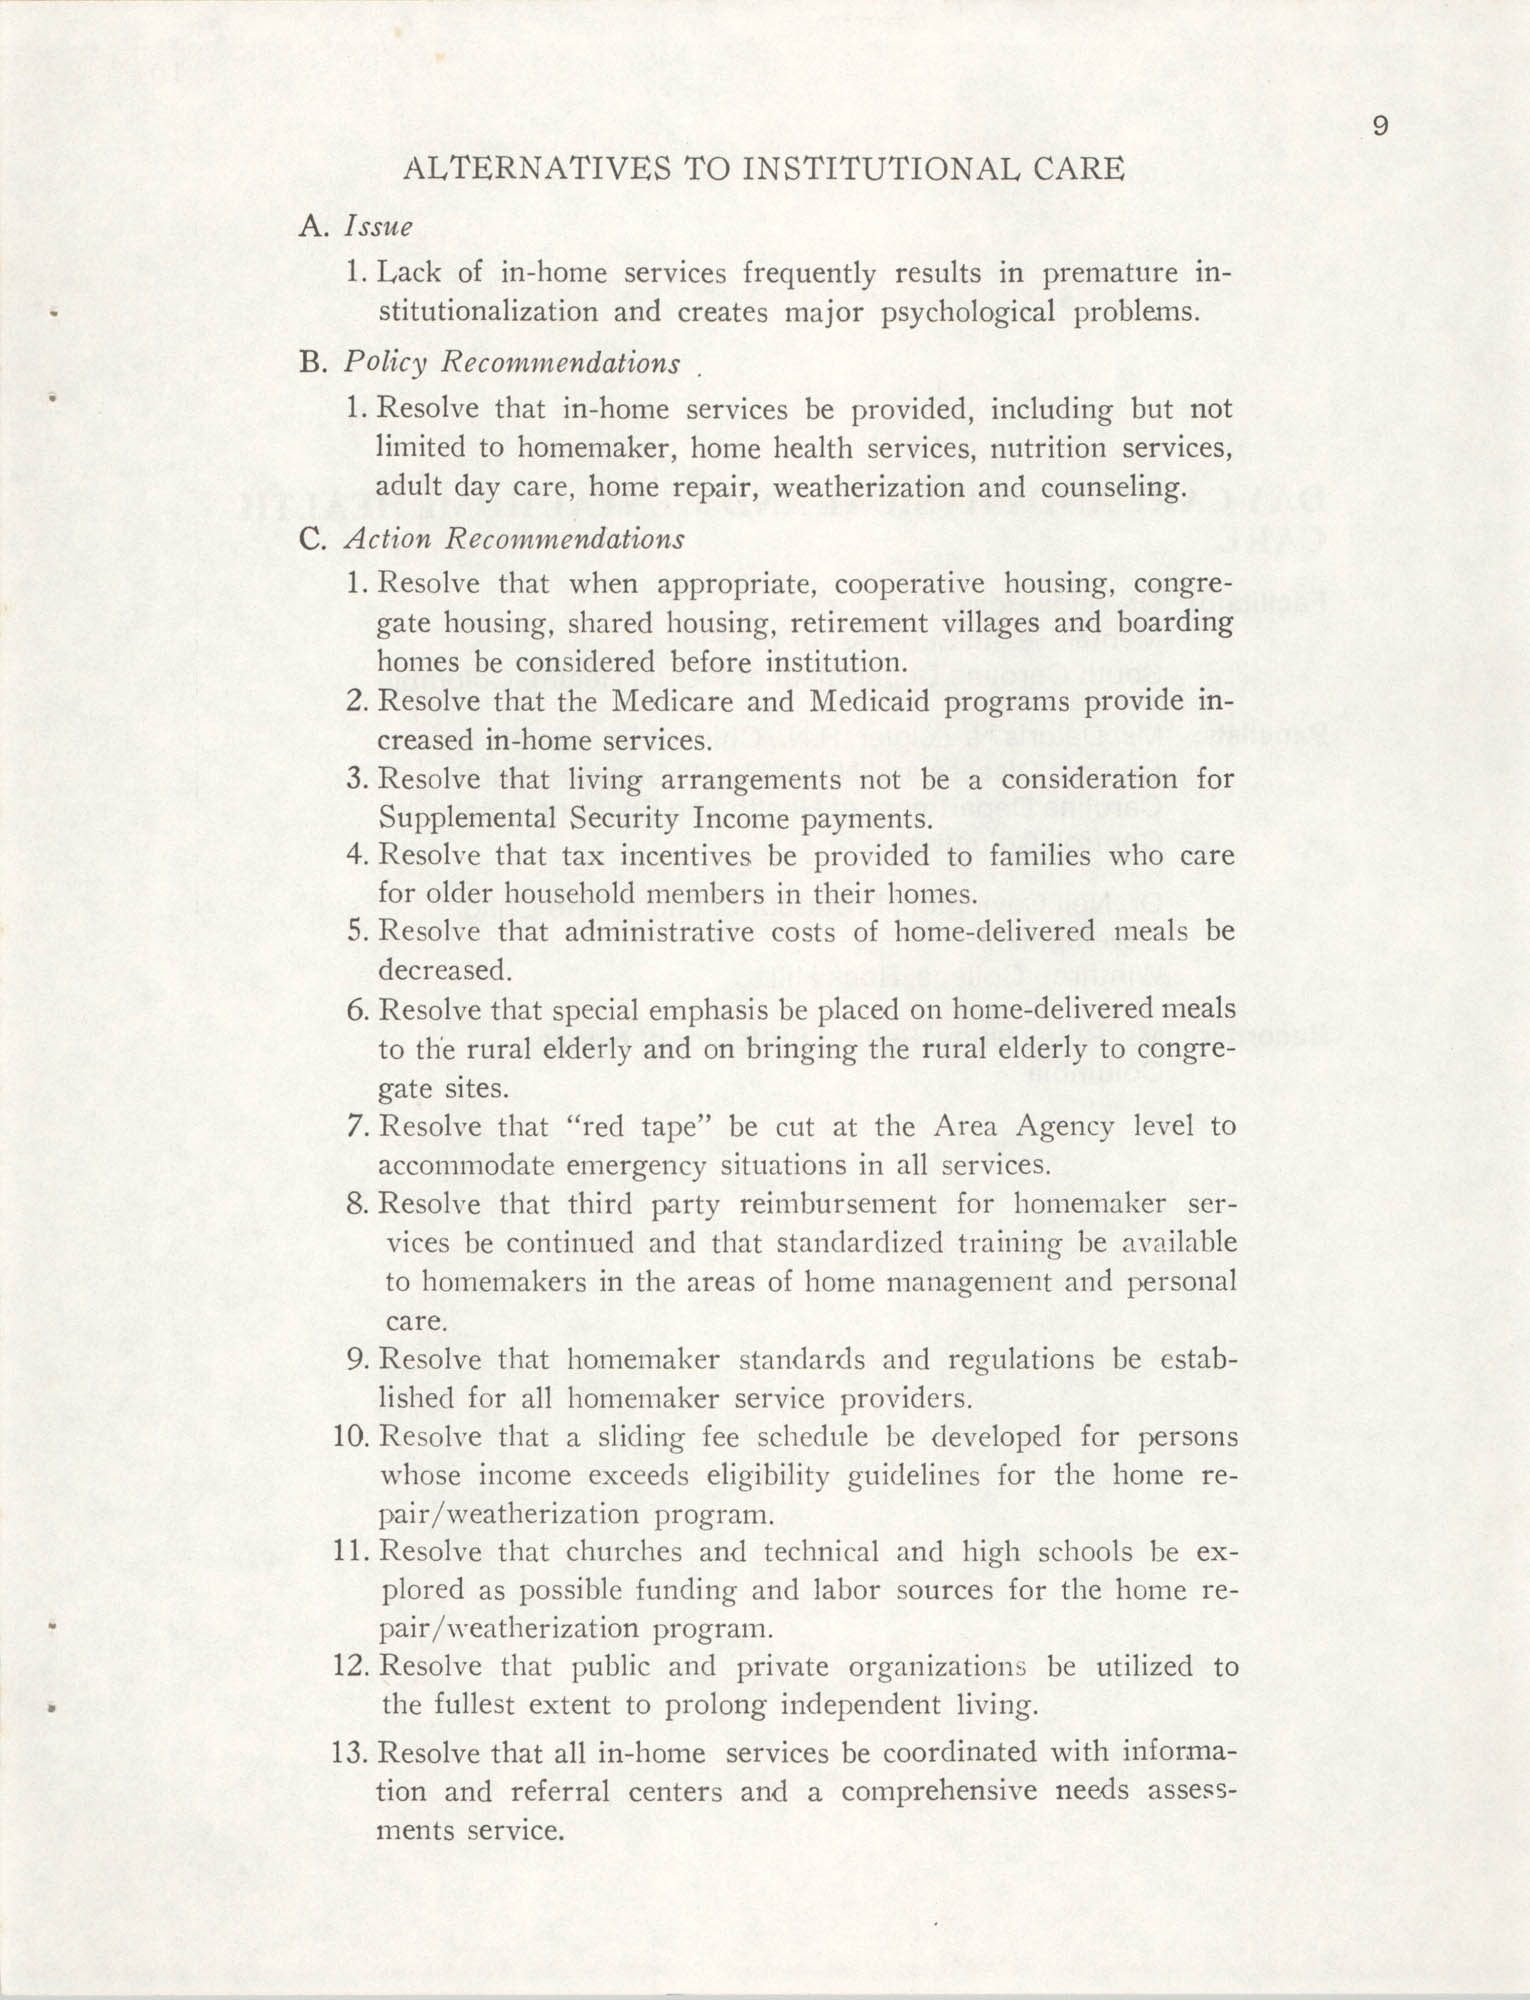 South Carolina Governor's White House Conference on Aging Proceedings, 1981, Page 9